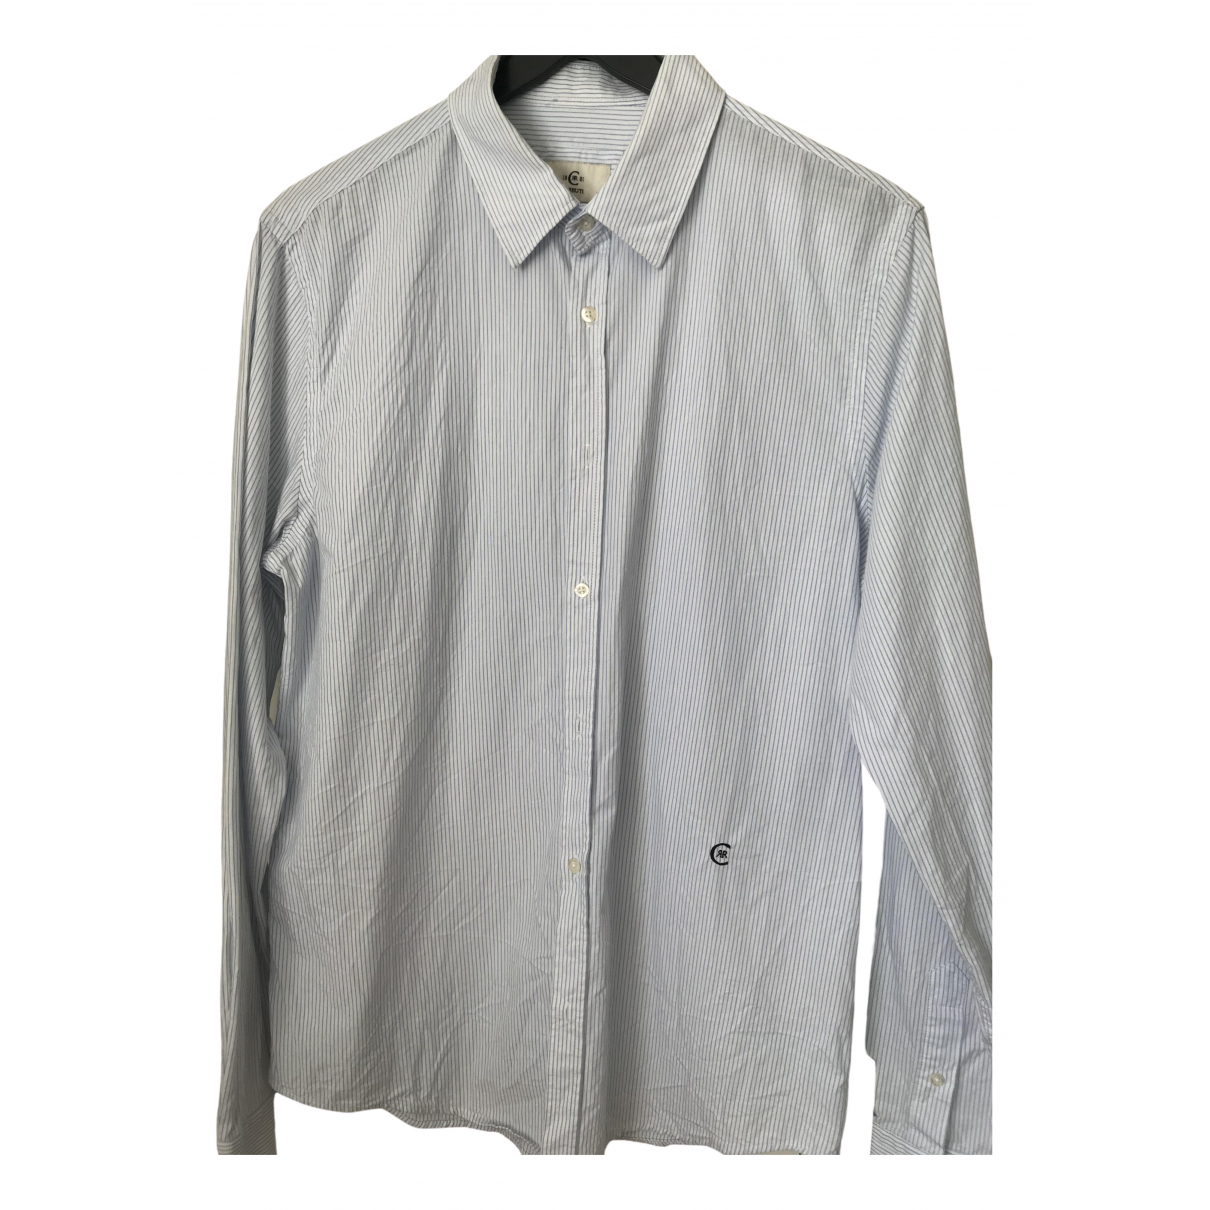 Cerruti \N Blue Cotton Shirts for Men L International